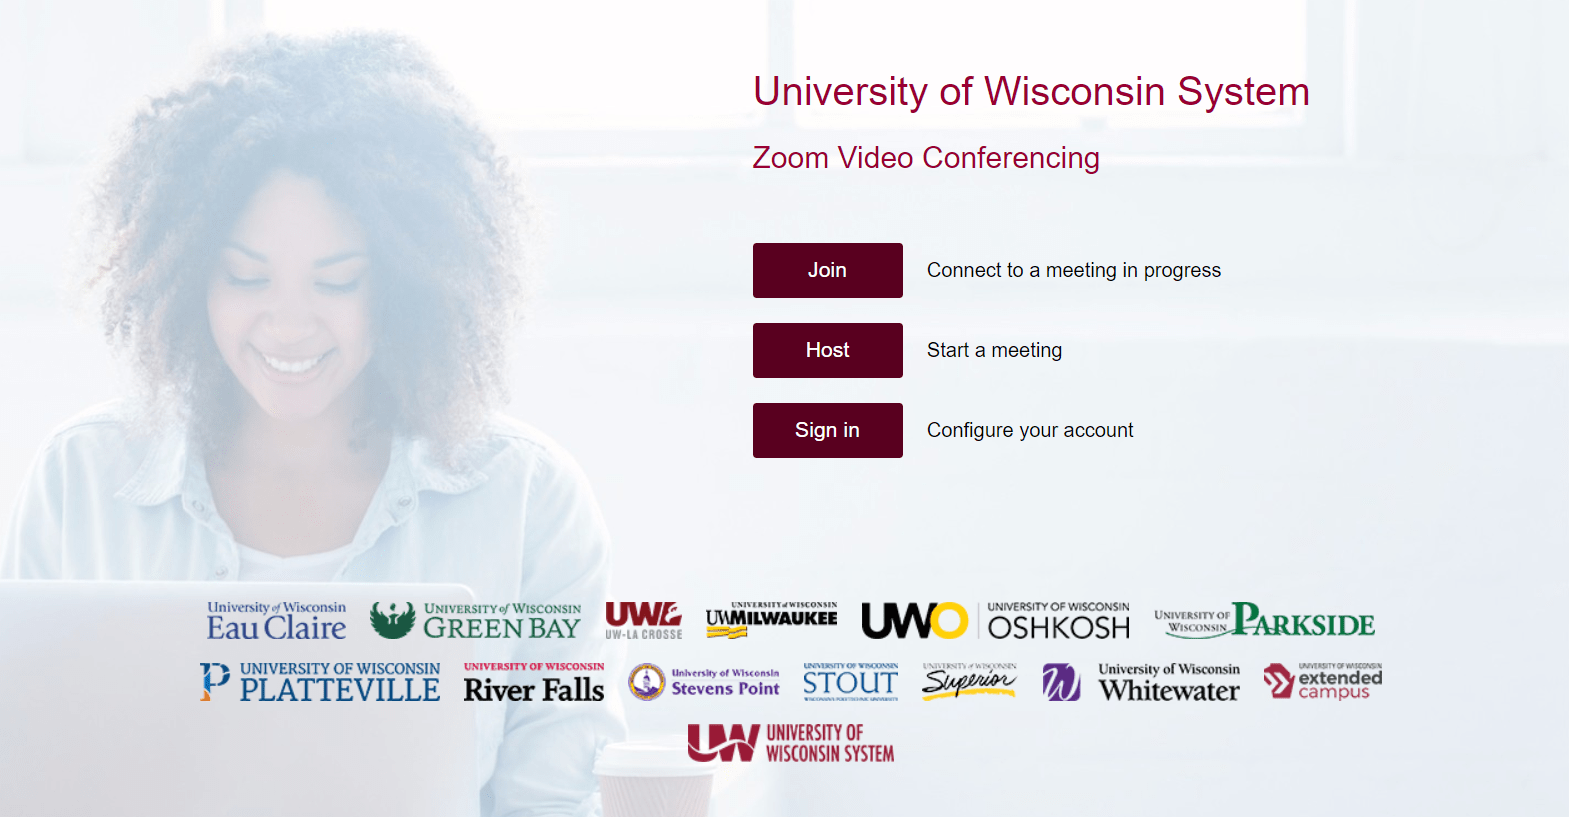 University of Wisconsin Zoom web portal sign-in page